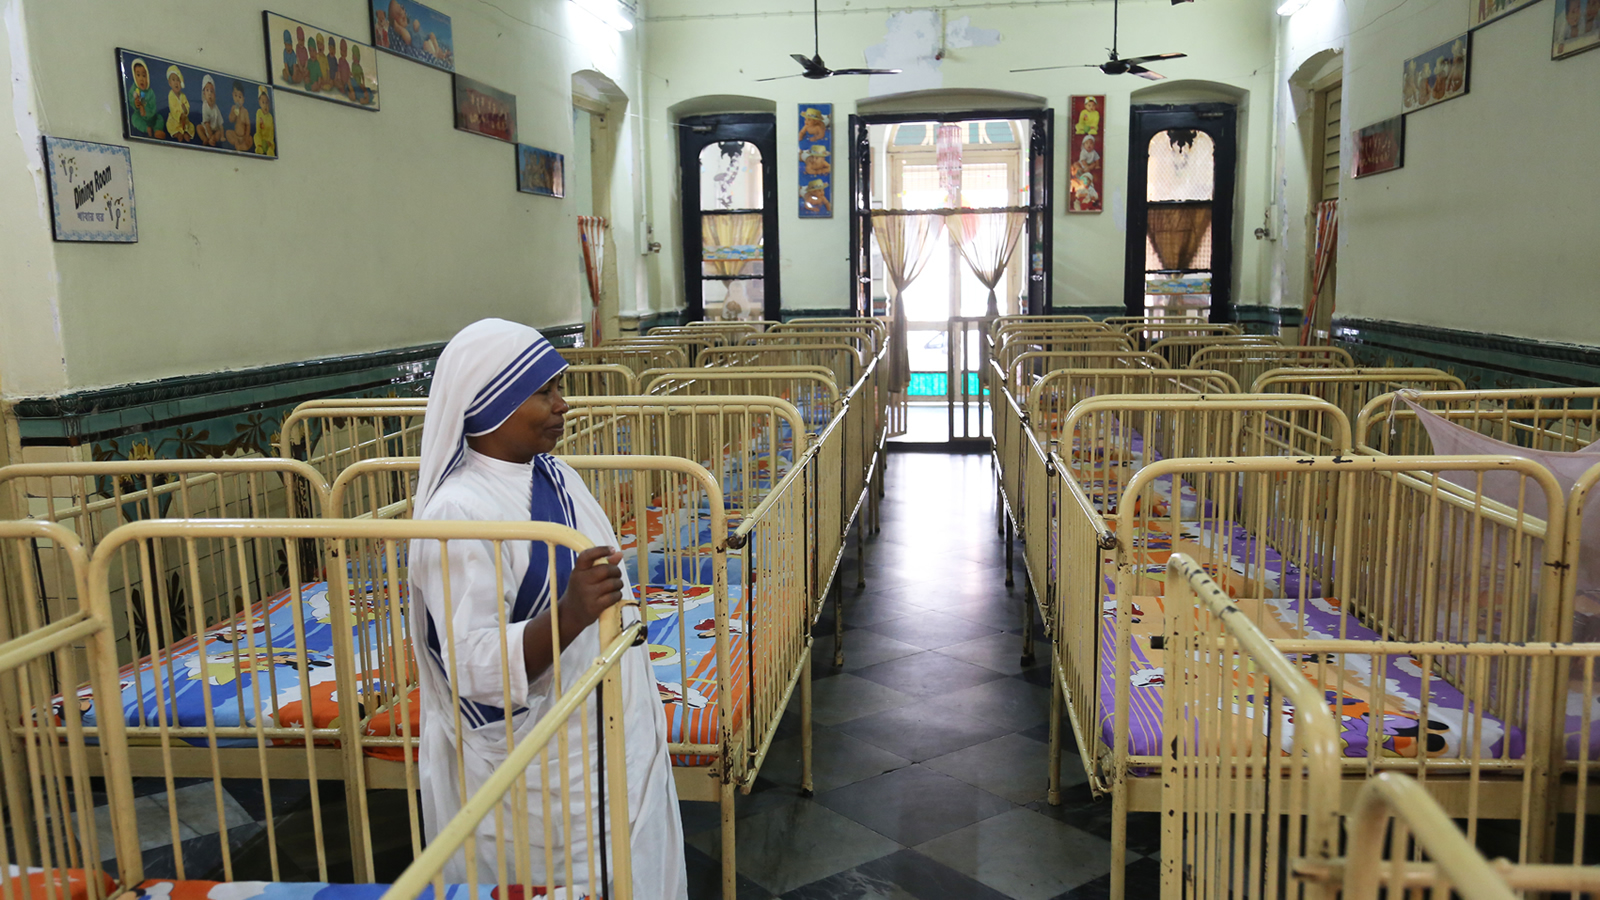 Indian nun stands in an orphanage surrounded by cribs.